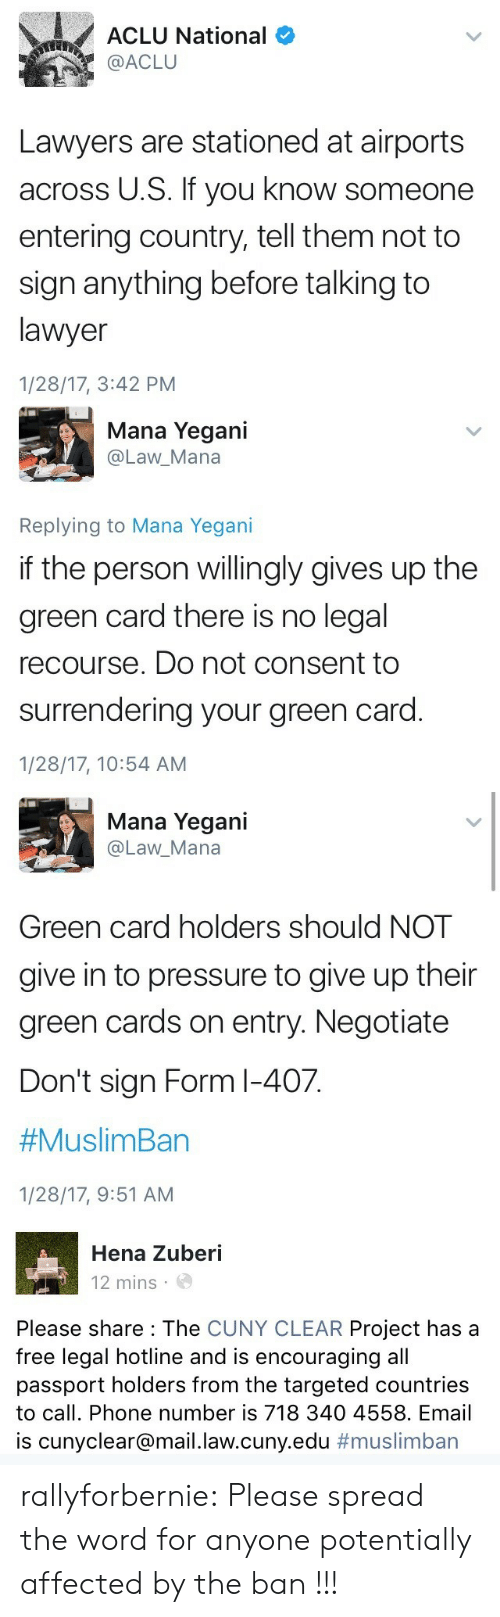 green card: ACLU National  @ACLU  Lawyers are stationed at airports  across U.S. If you know someone  entering country, tell them not to  sign anything before talking to  lawyer  1/28/17, 3:42 PM   Mana Yegani  @Law_Mana  Replying to Mana Yegani  if the person willingly gives up the  green card there is no legal  recourse. Do not consent to  surrendering your green card  1/28/17, 10:54 AM   Mana Yegani  @Law_Mana  Green card holders should NOT  give in to pressure to give up their  green cards on entry. Negotiatee  Don't sign Form l-407.  #Muslim Ban  1/28/17, 9:51 AM   Hena Zuberi  12 mins  Please share : The CUNY CLEAR Project has a  free legal hotline and is encouraging all  passport holders from the targeted countries  to call. Phone number is 718 340 4558. Email  is cunyclear@mail.law.cuny.edu rallyforbernie: Please spread the word for anyone potentially affected by the ban !!!